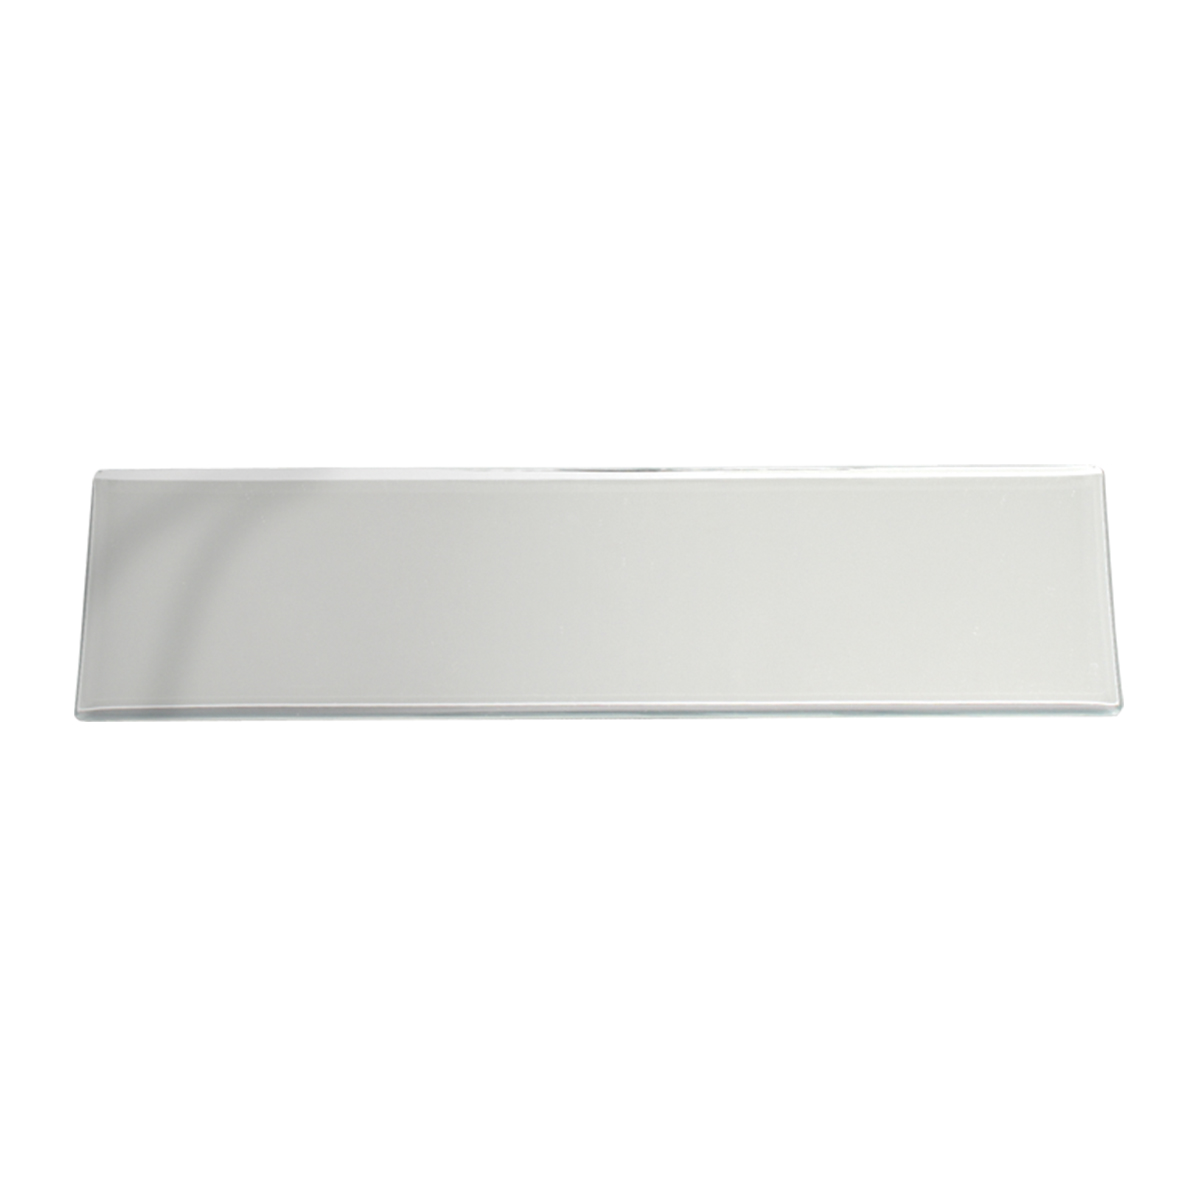 68916 KW Chrome Soft Plastic Top Compartment Cover